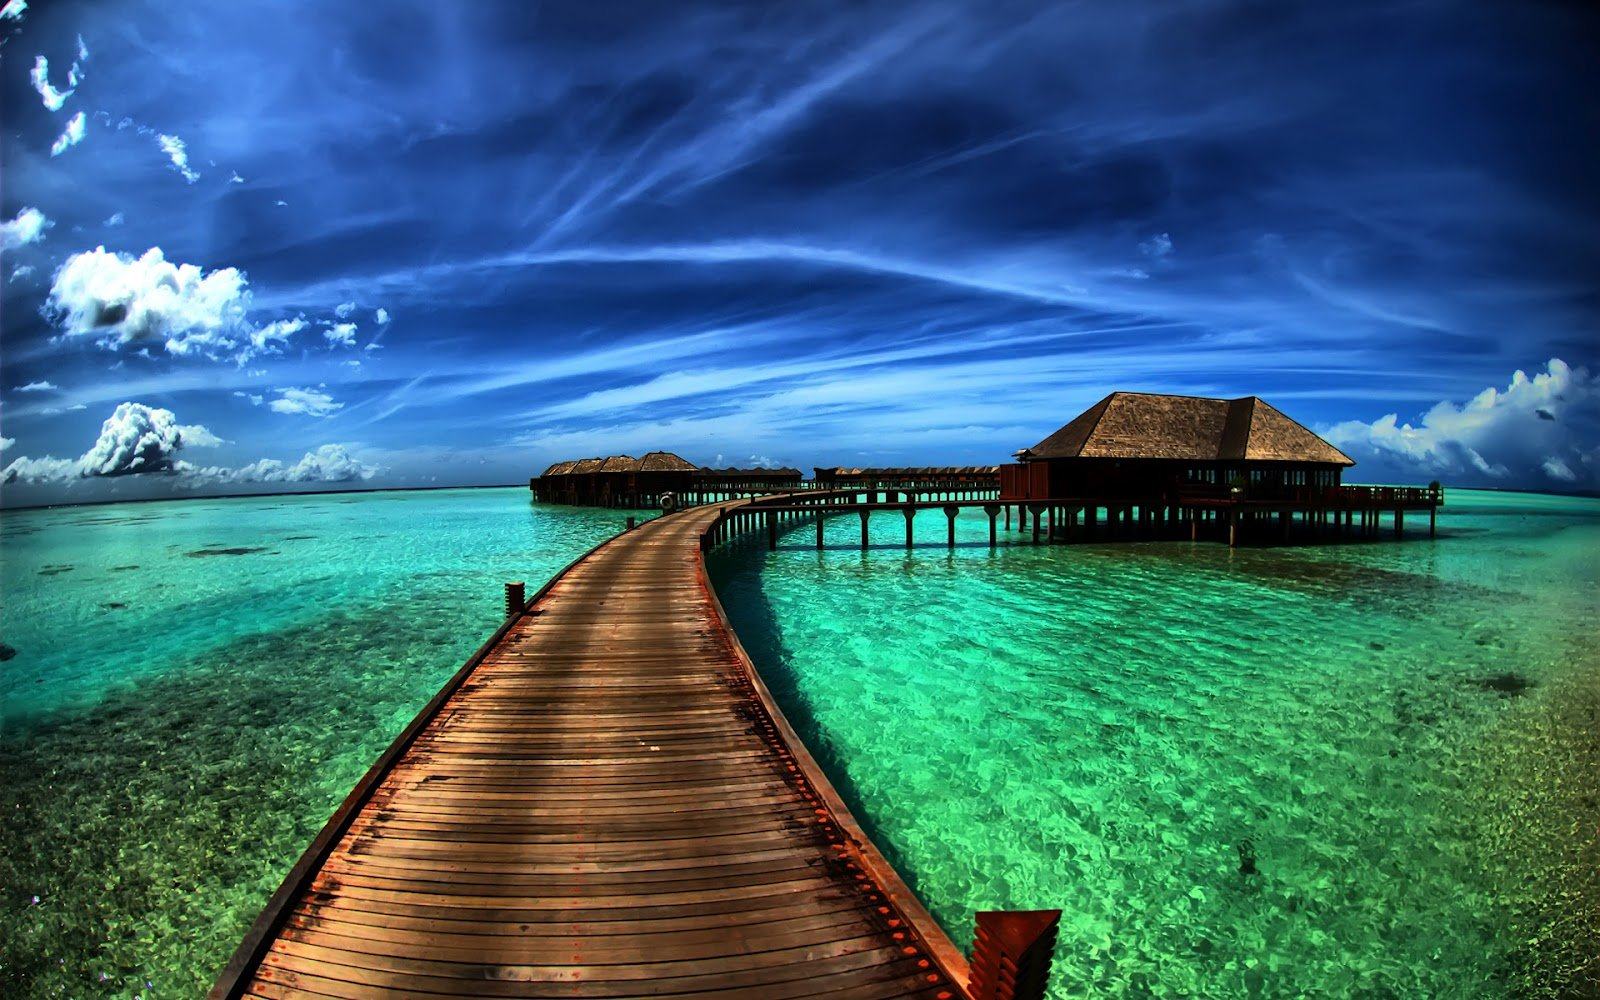 High Definition Wallpapers - HD wallpapers: Beautiful High ...